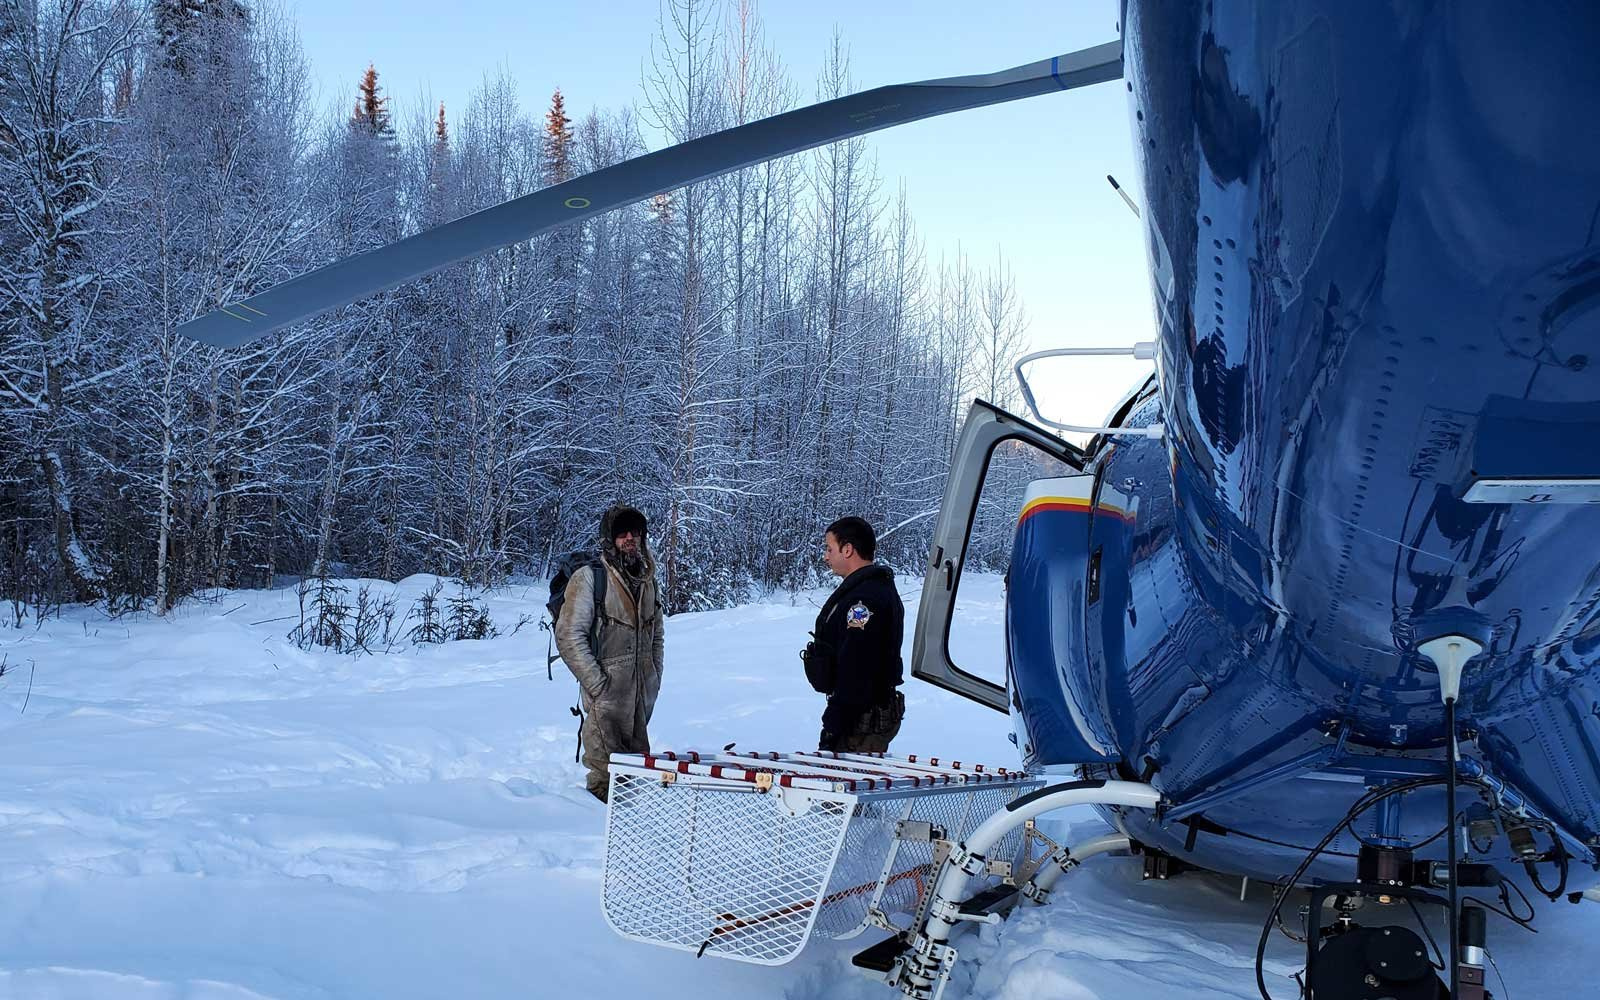 Man survives 20 days in the Alaskan wilderness with peanut butter and canned goods